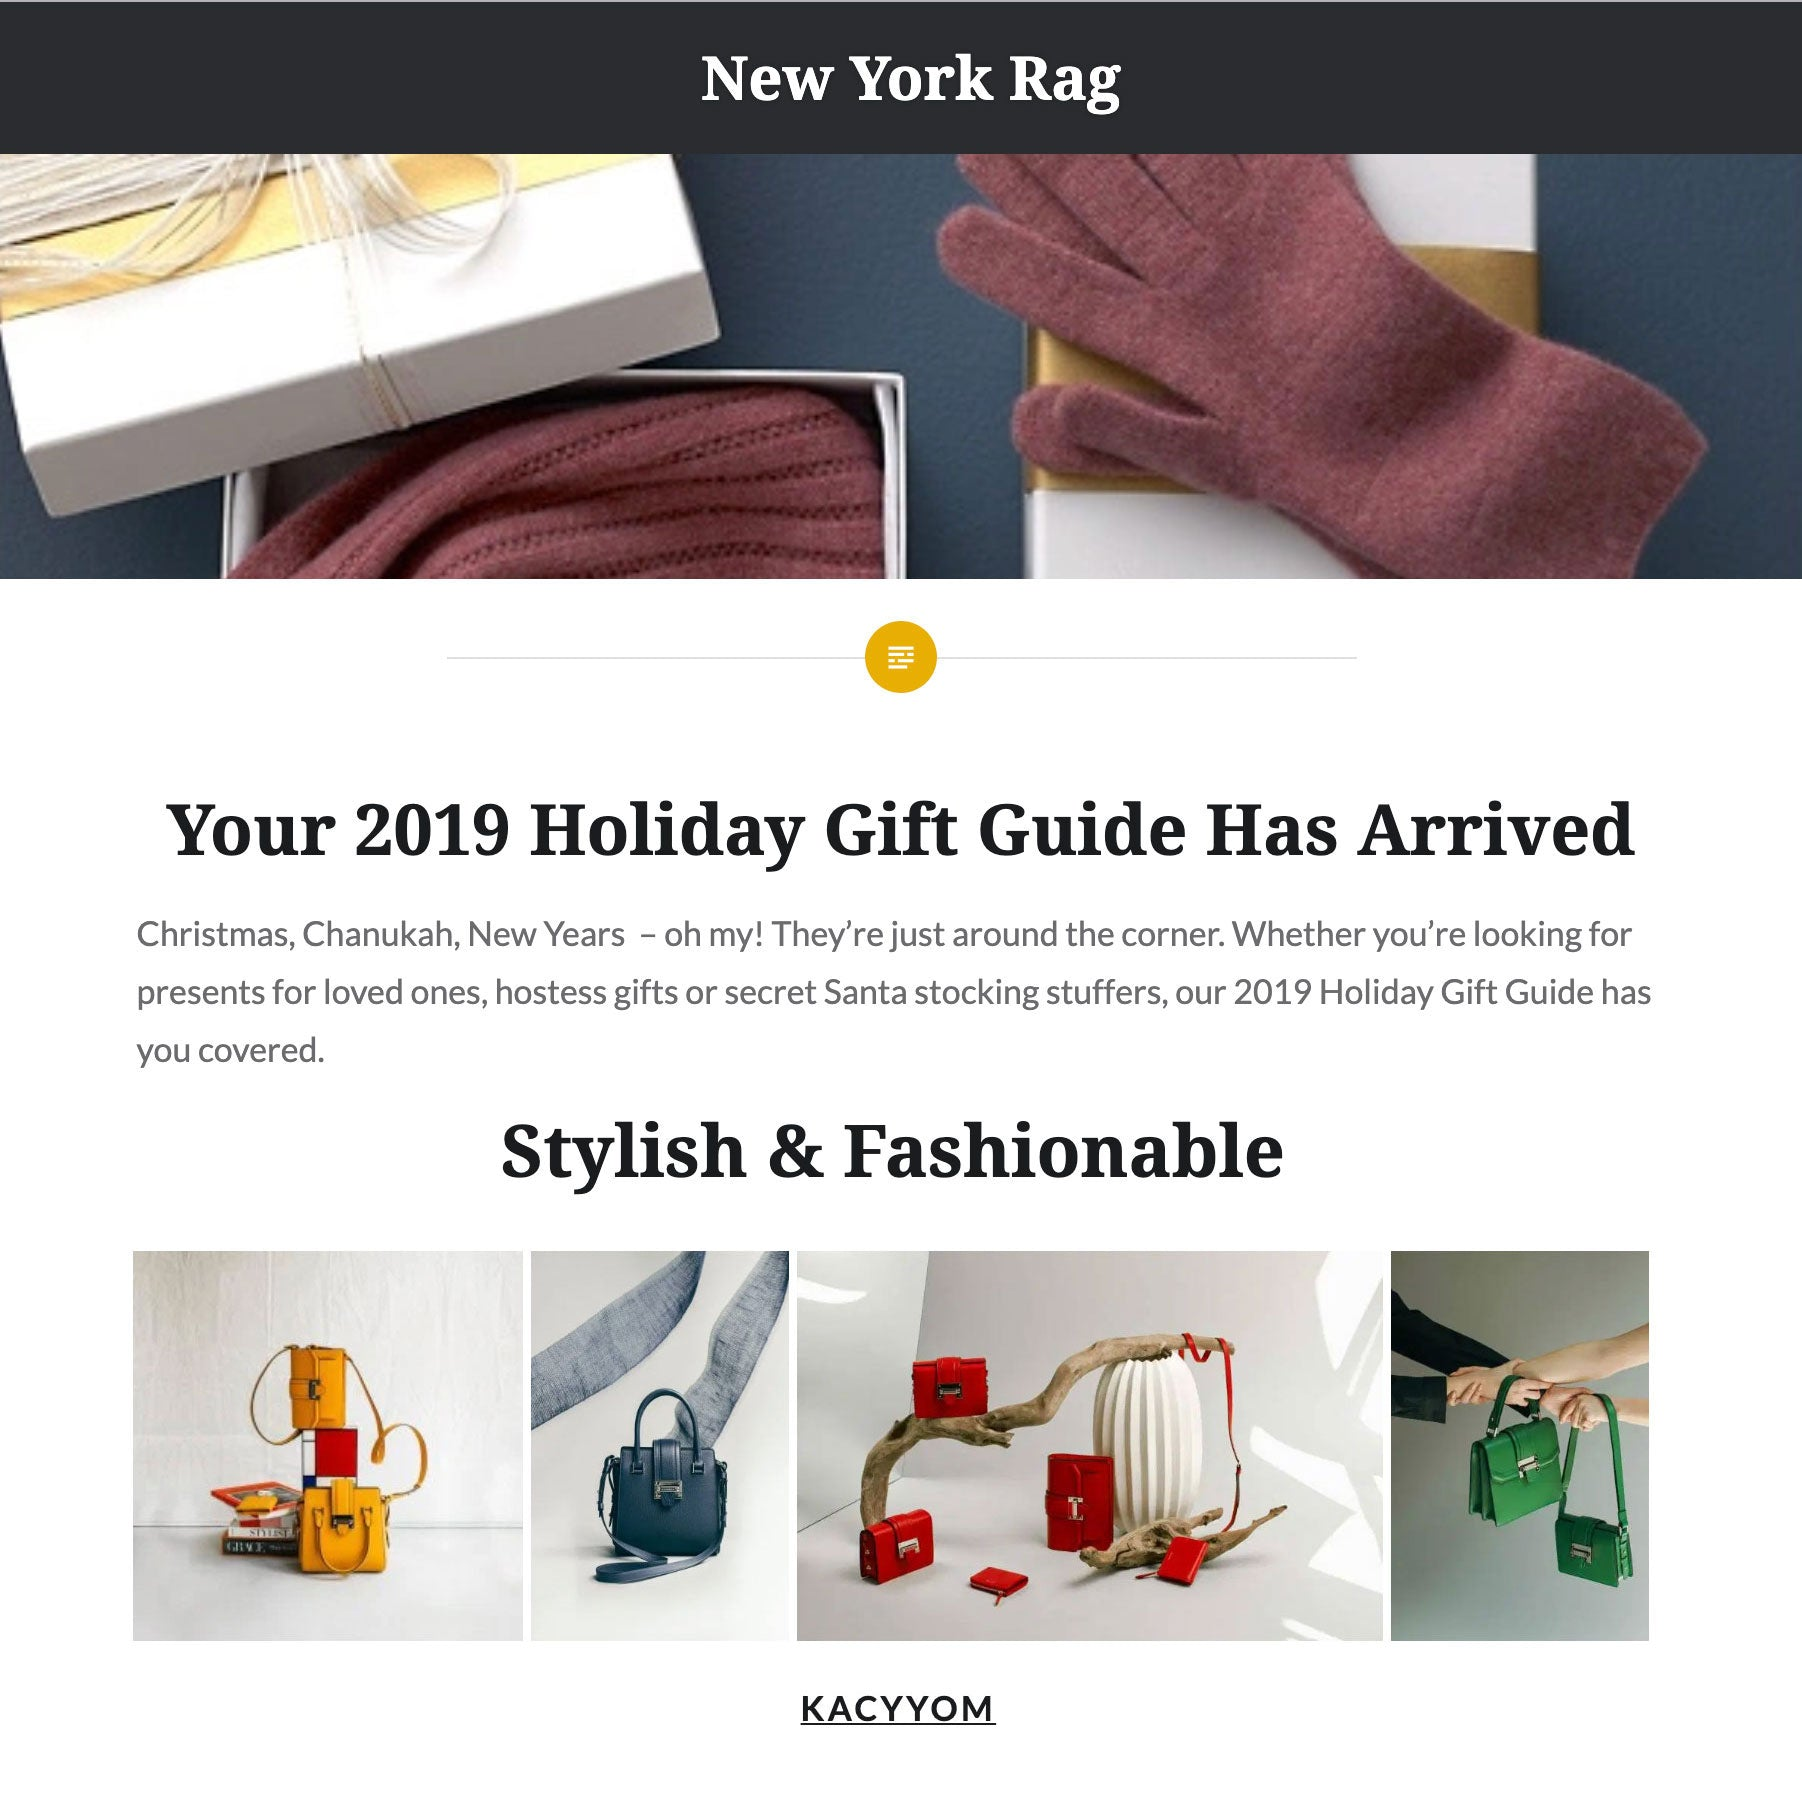 New York Rag 2019 Holiday Gift Guide